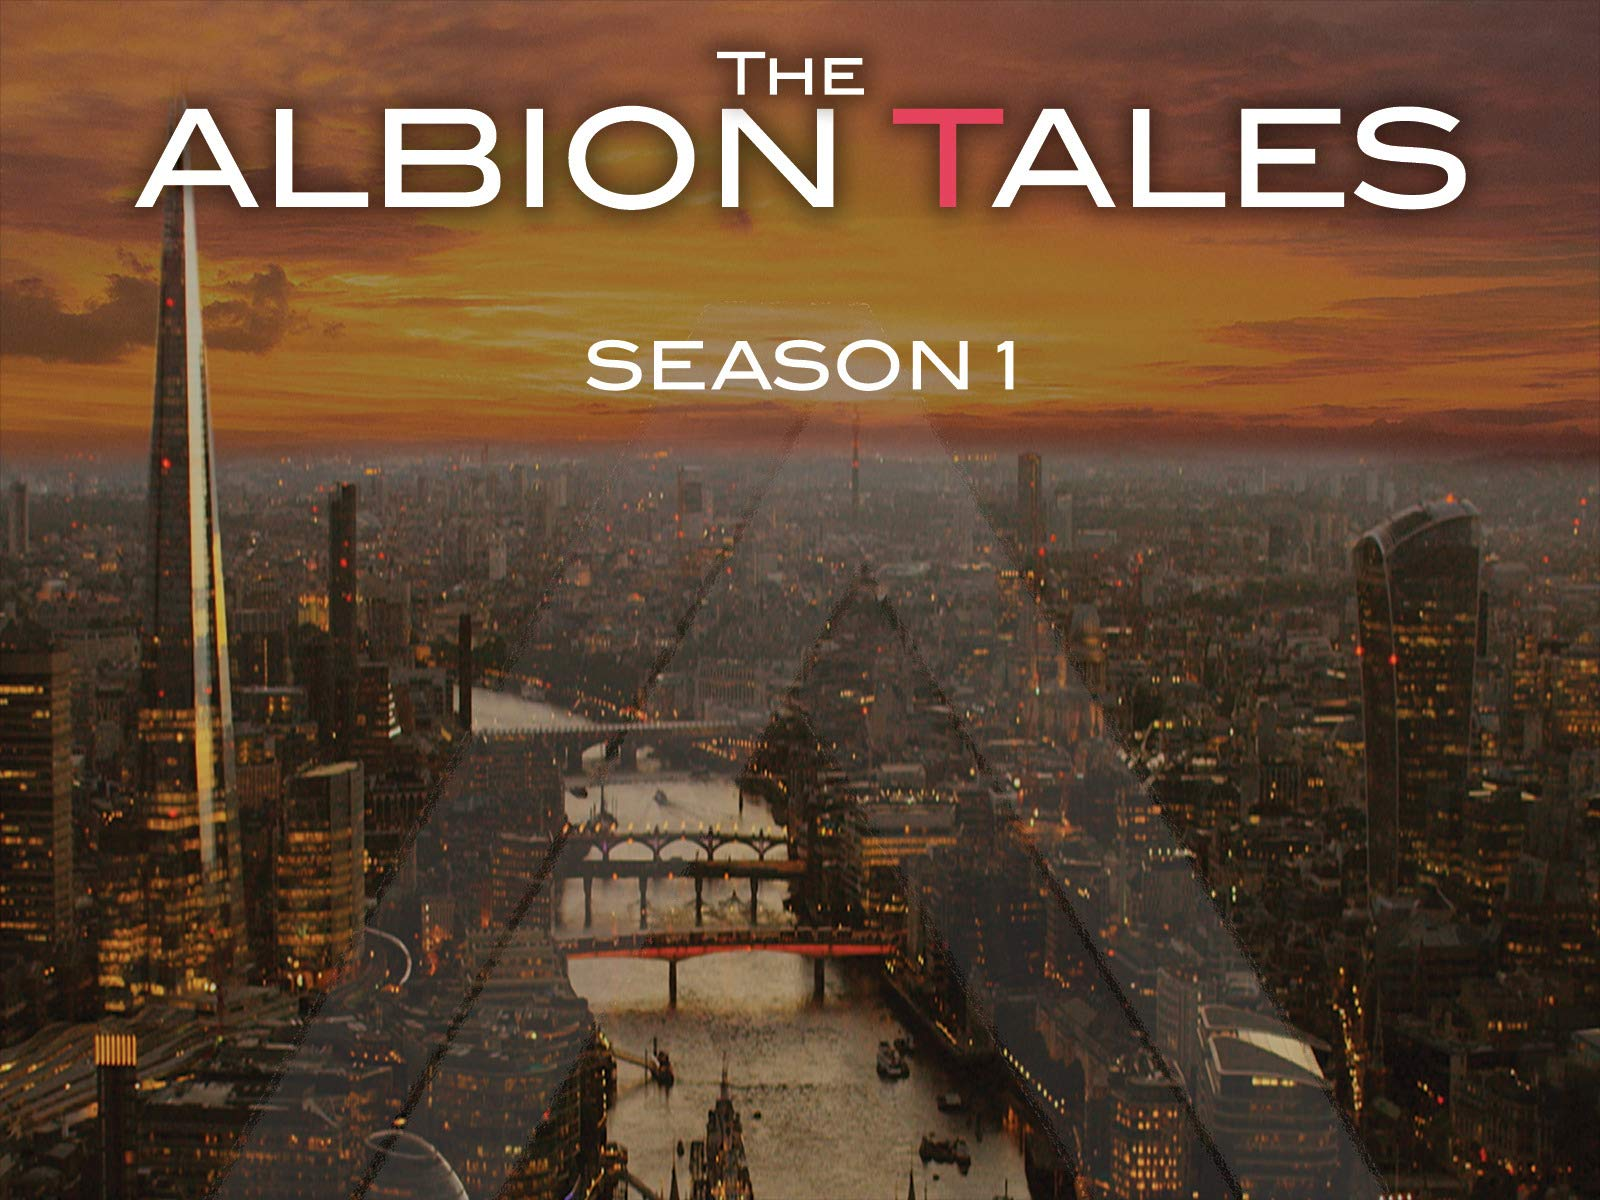 The Albion Tales